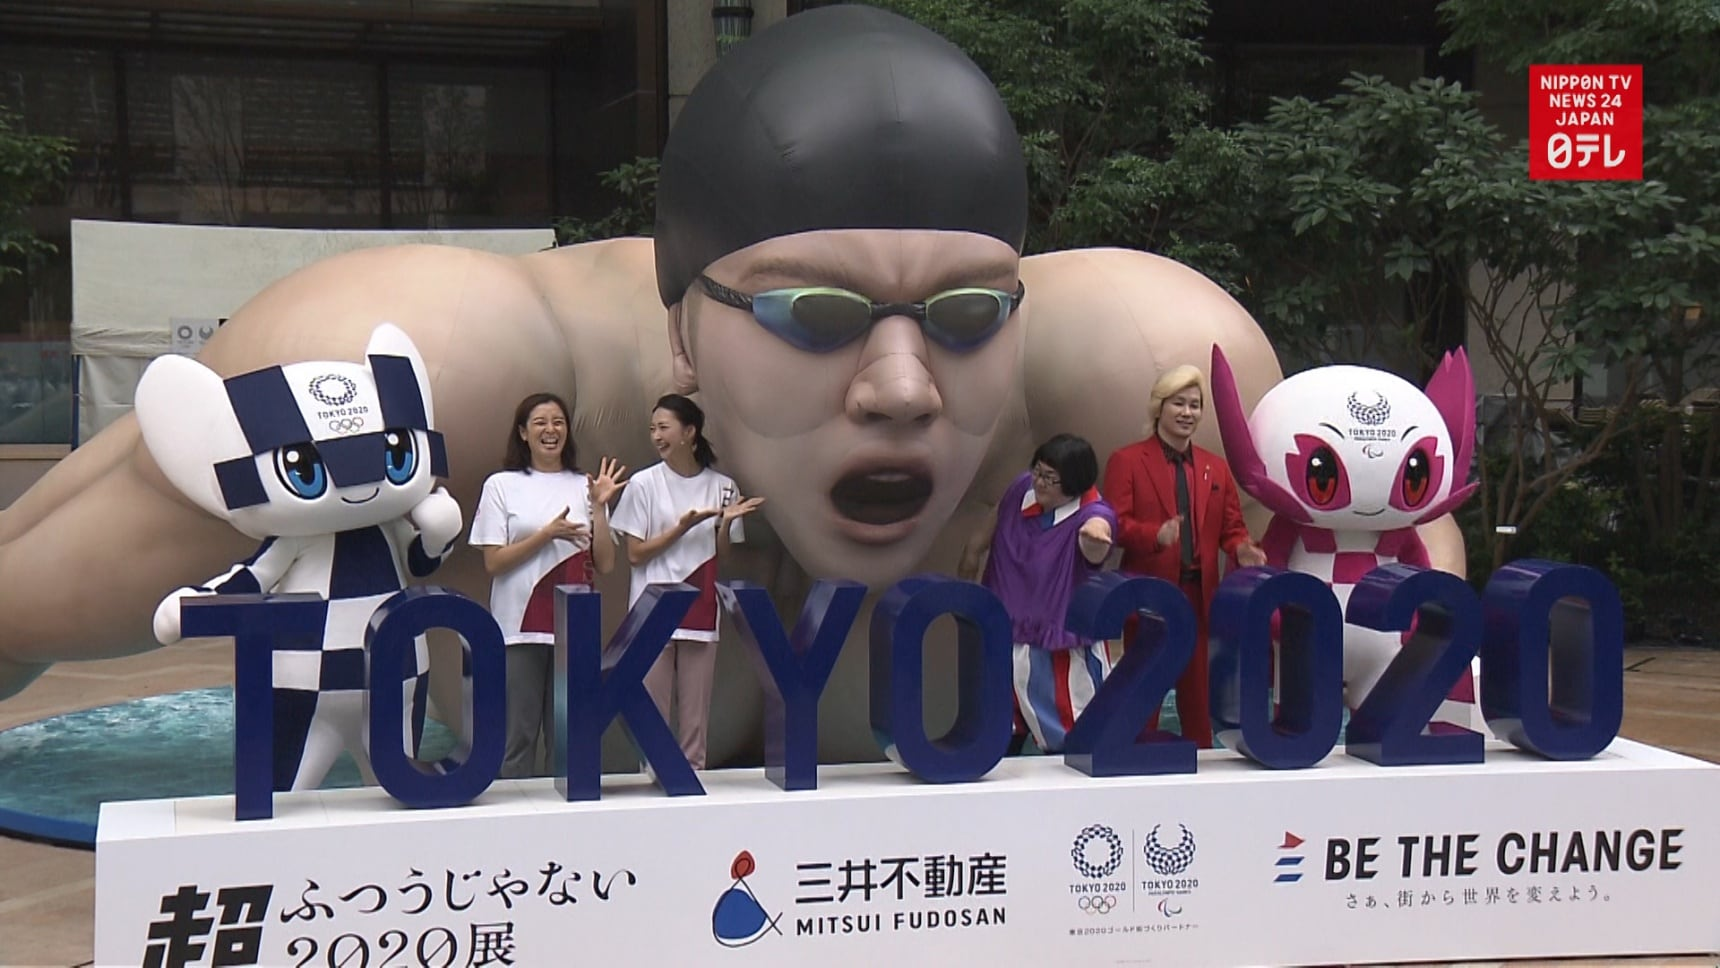 Tokyo Neighborhood Decked Out for Olympics